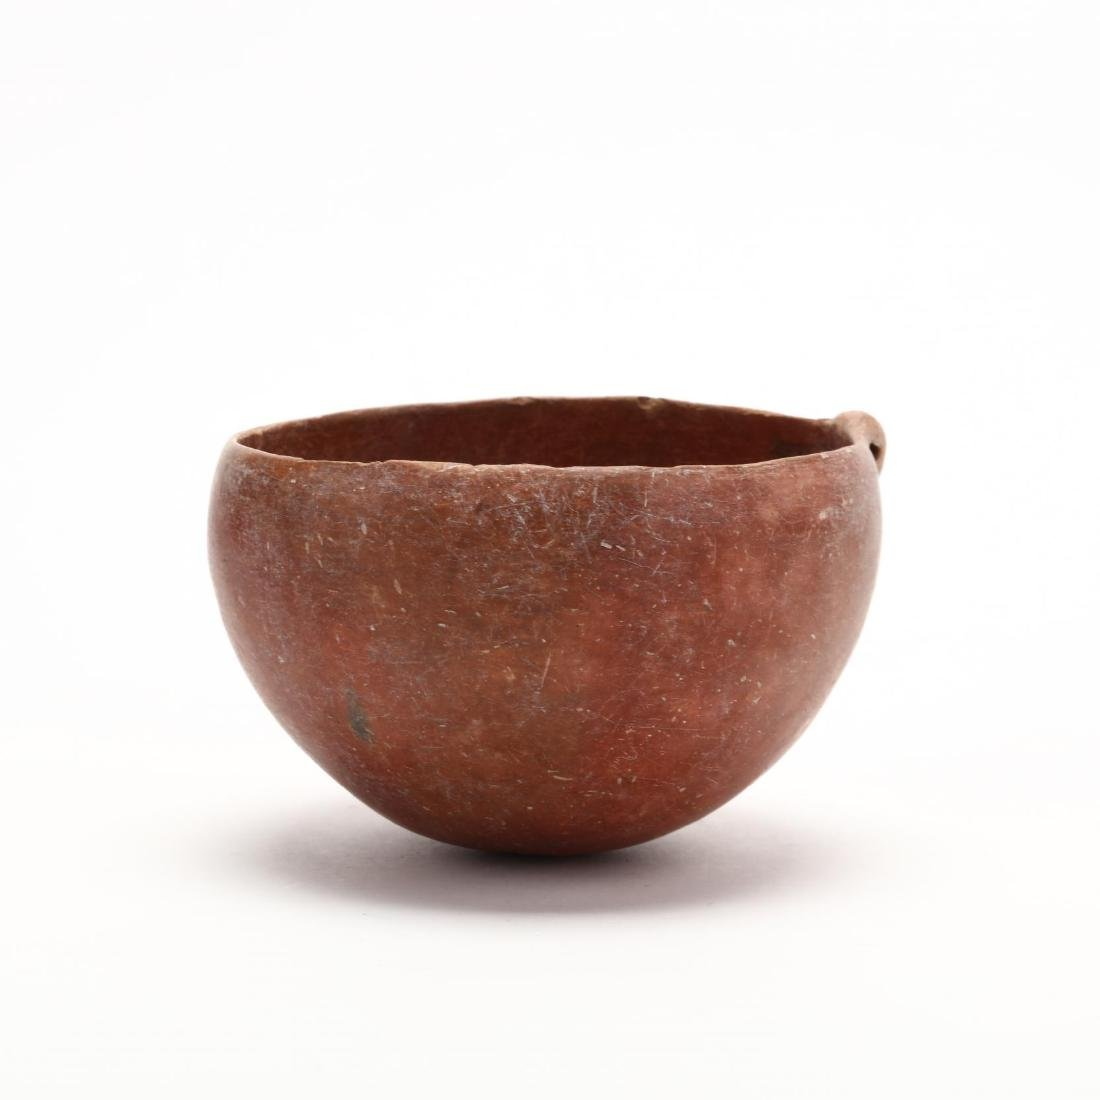 Cypriot Early Bronze Age Polished Red Ware Bowl - 3